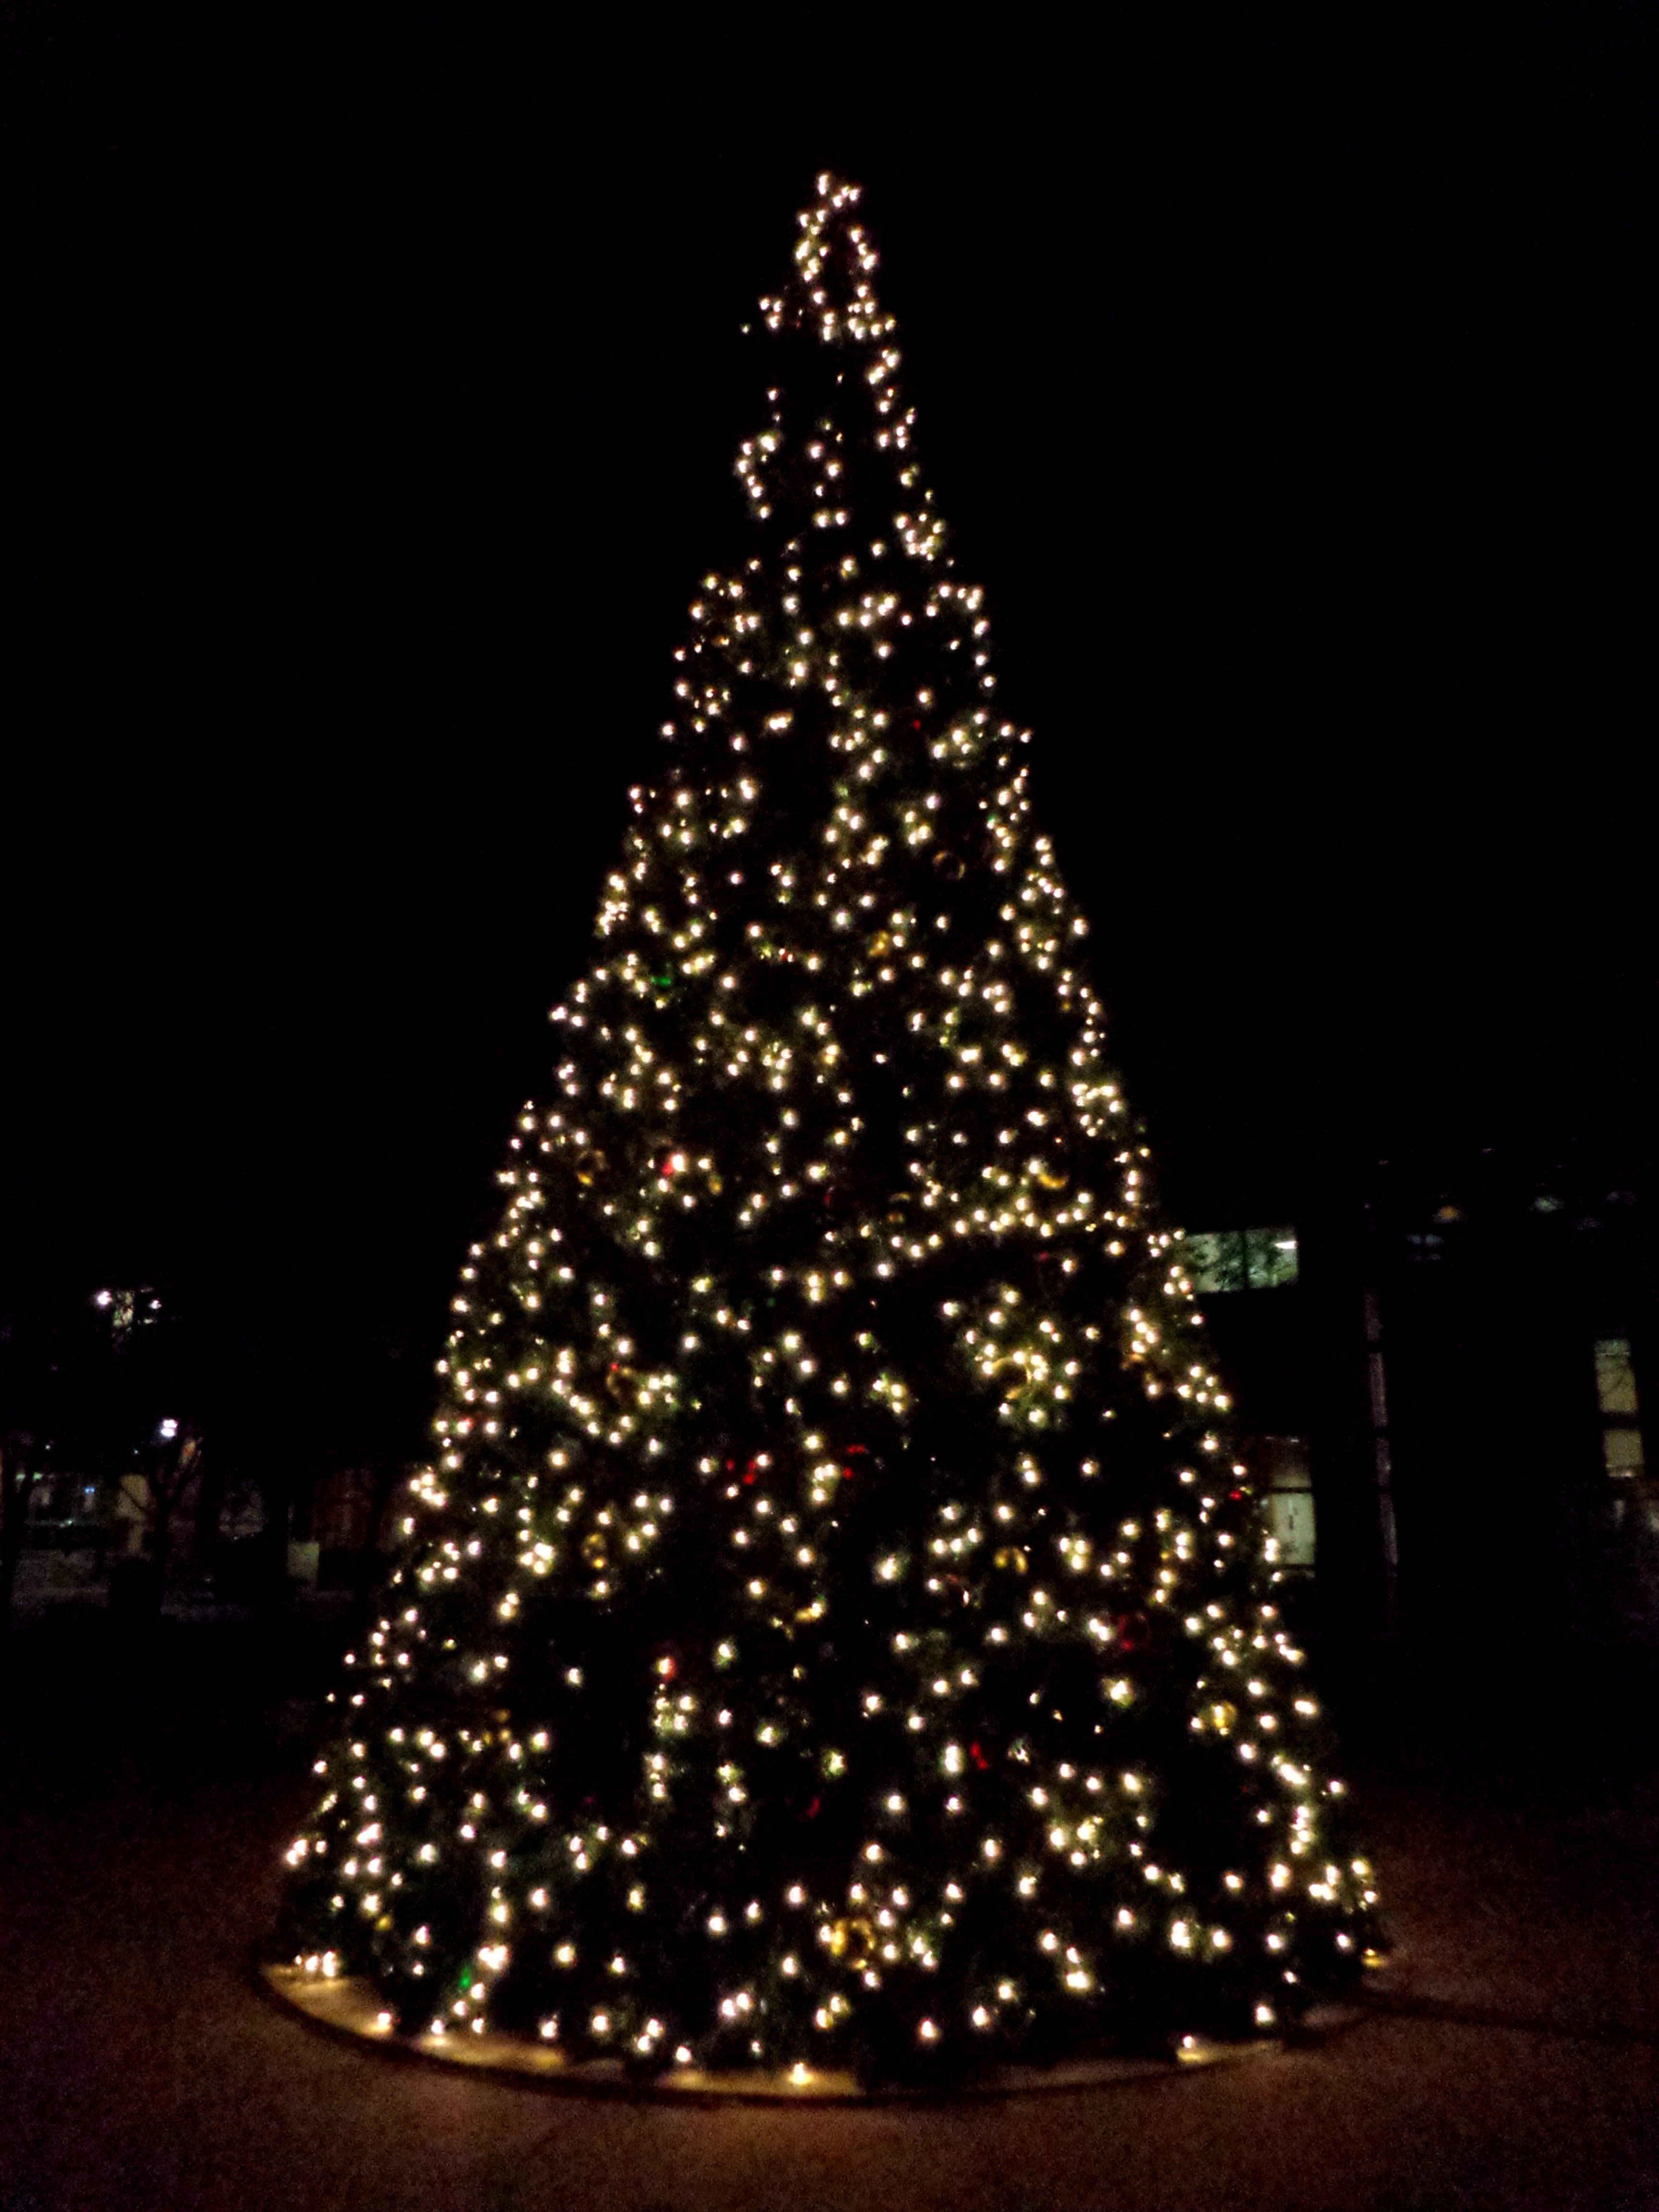 Slayer Weihnachtsbeleuchtung.Free High Resolution Photo Of A Christmas Tree With White Lights